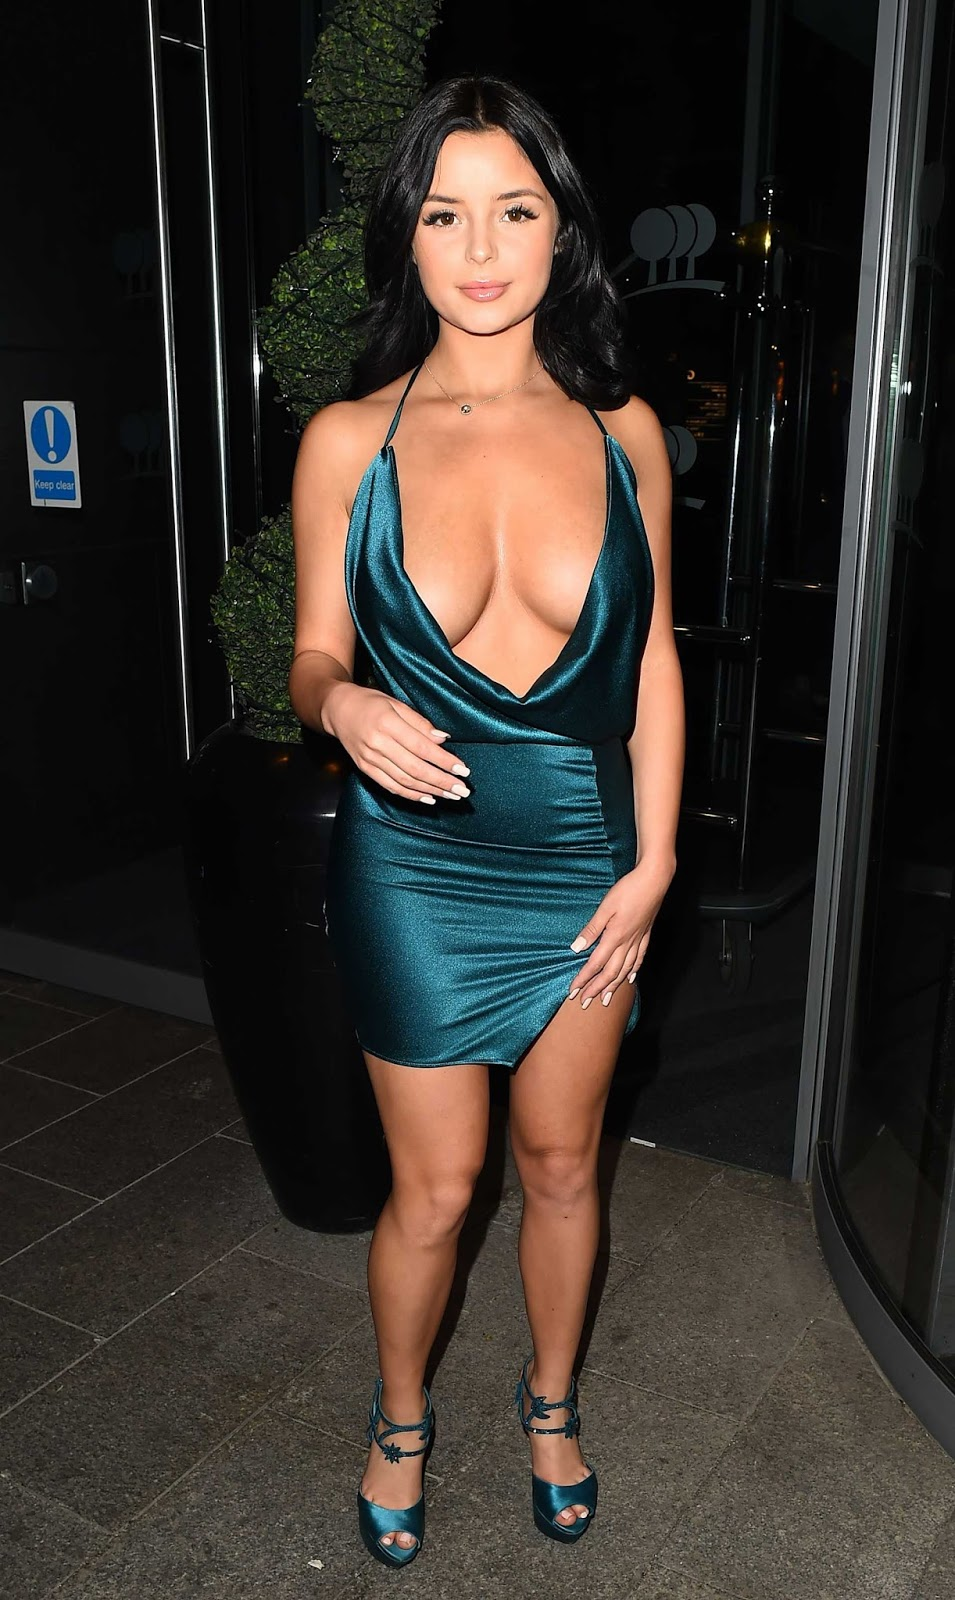 Demi Rose flaunts pert derriere during birthday celebrations in London